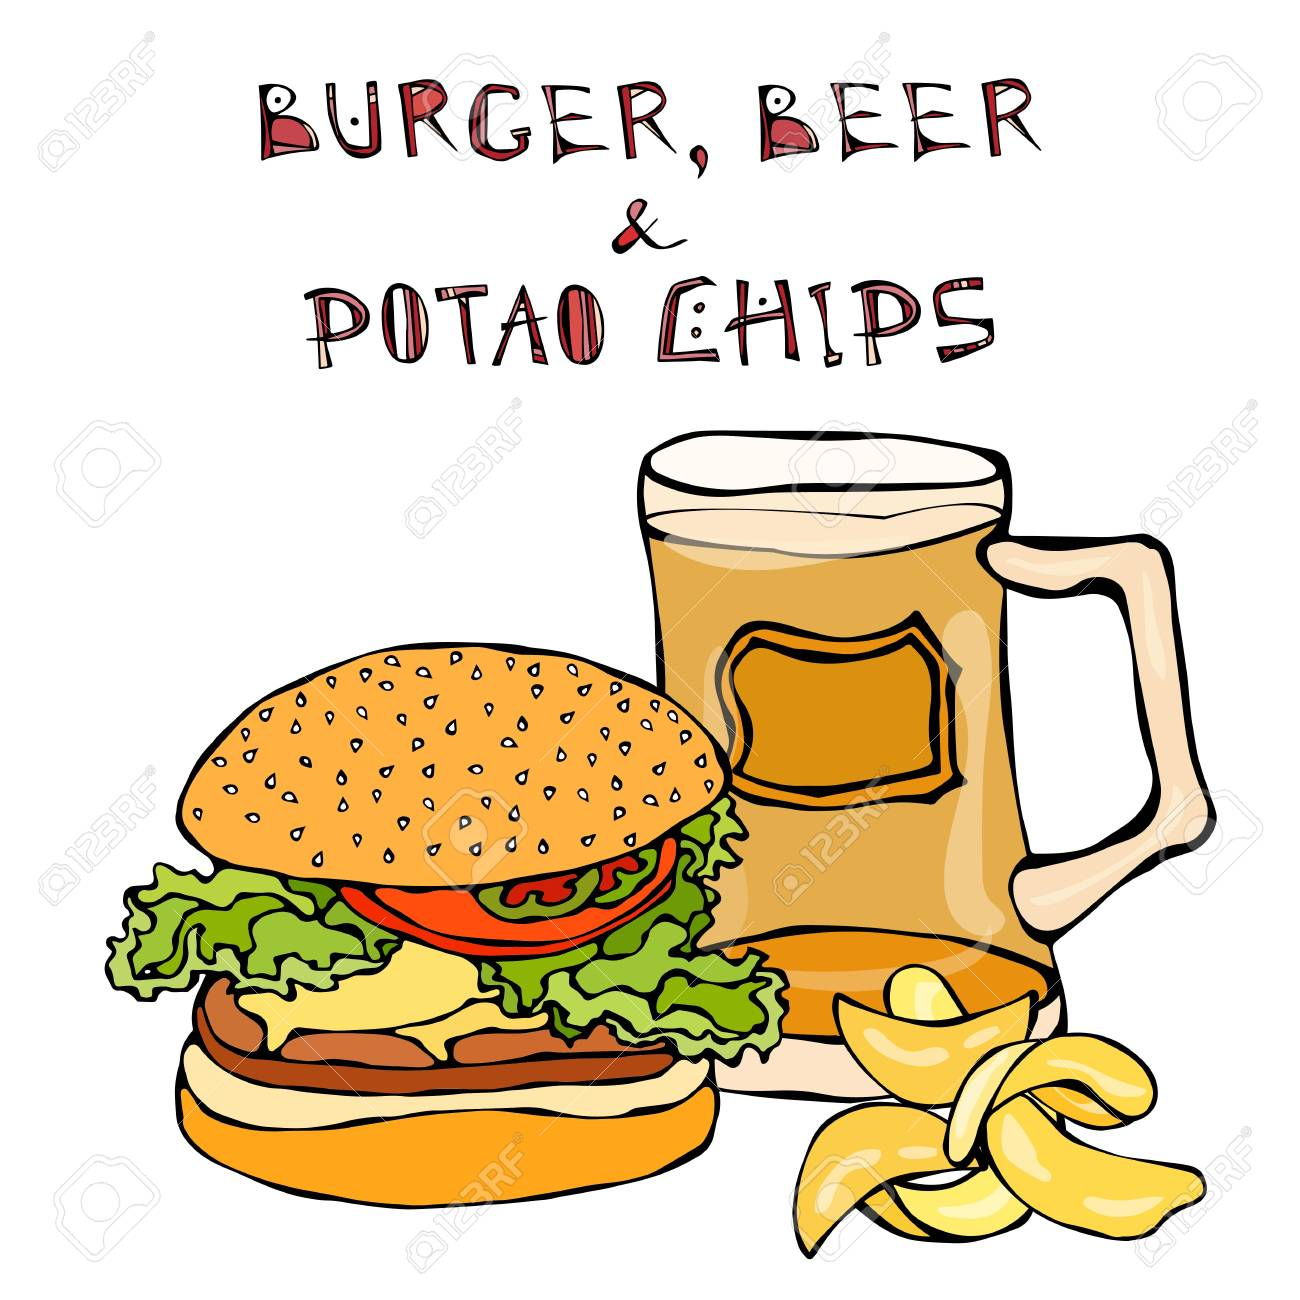 Big Hamburger Or Cheeseburger Beer Mug Or Pint And Potato Chips Royalty Free Cliparts Vectors And Stock Illustration Image 80098647